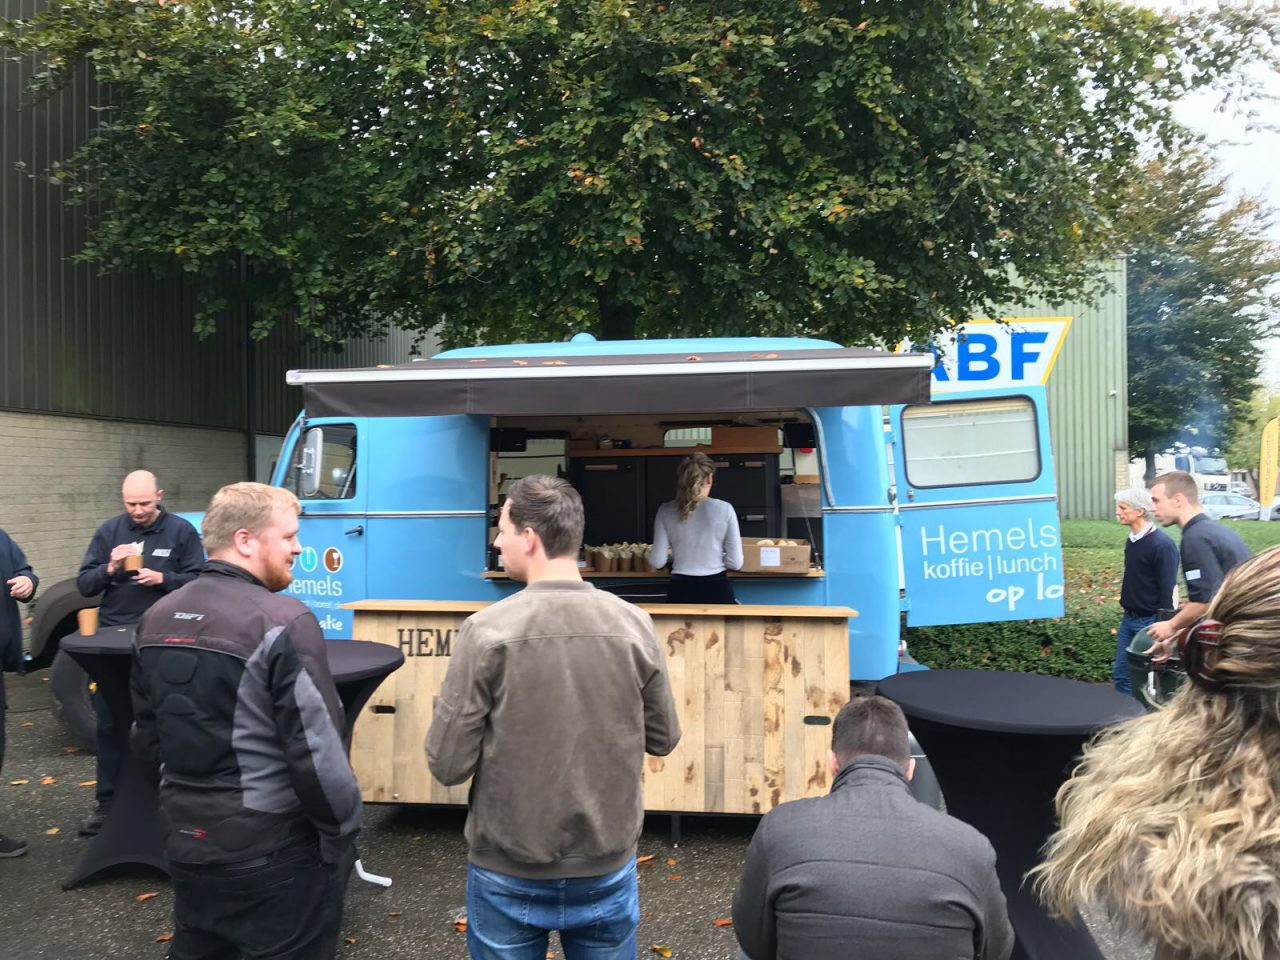 ABF celebrates record turnover with food truck